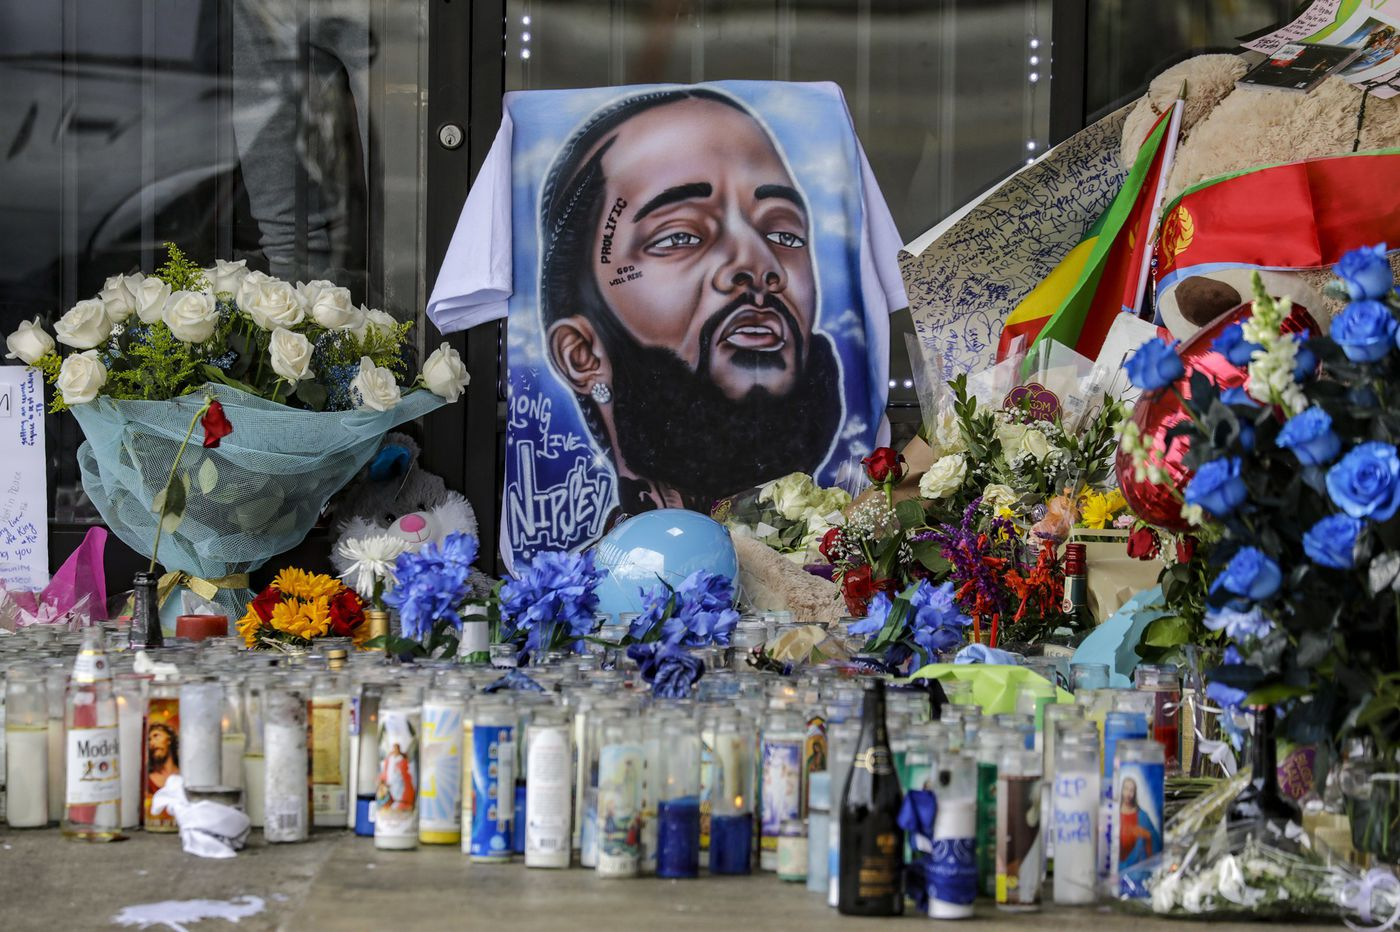 With the shooting death of Nipsey Hussle, we are back at the intersection of celebrity and justice | Helen Ubiñas